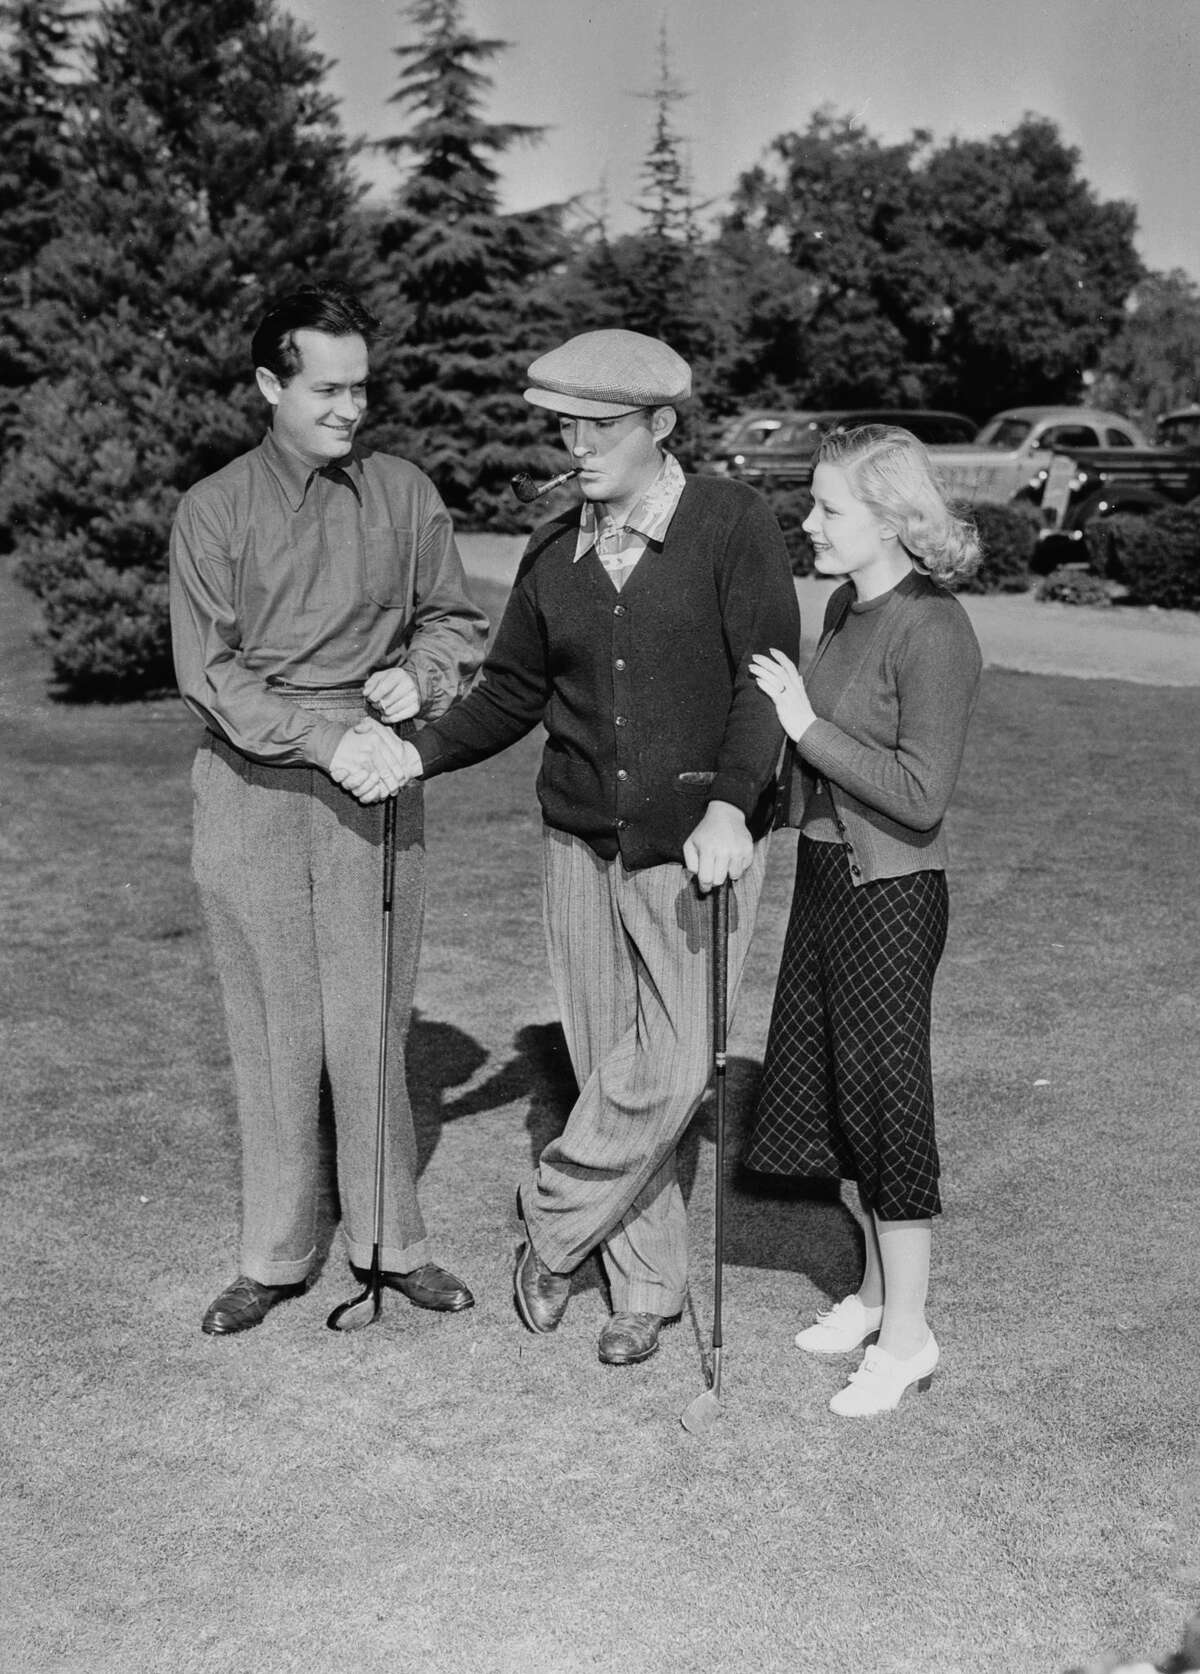 circa 1942: American comedian and actor Bob Hope (1903 - 2003) on the golf course with actress Mary Carlisle and Bing Crosby (1901 - 1977), his co-star in the series of 'Road to...' films. (Photo via John Kobal Foundation/Getty Images)